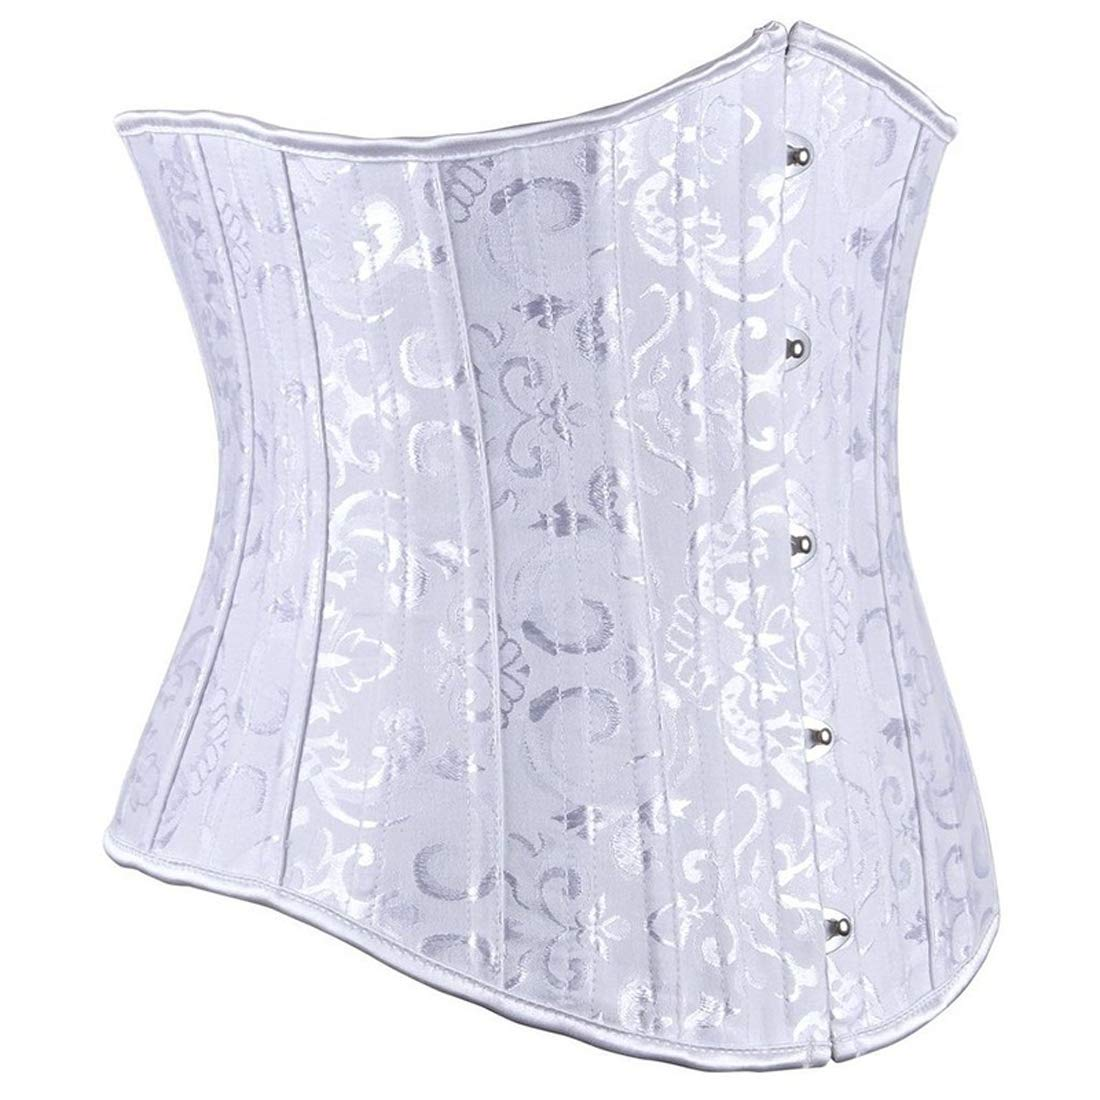 XL Underbust Flexible Steel Corset White with Silver Feathers Free Shipping